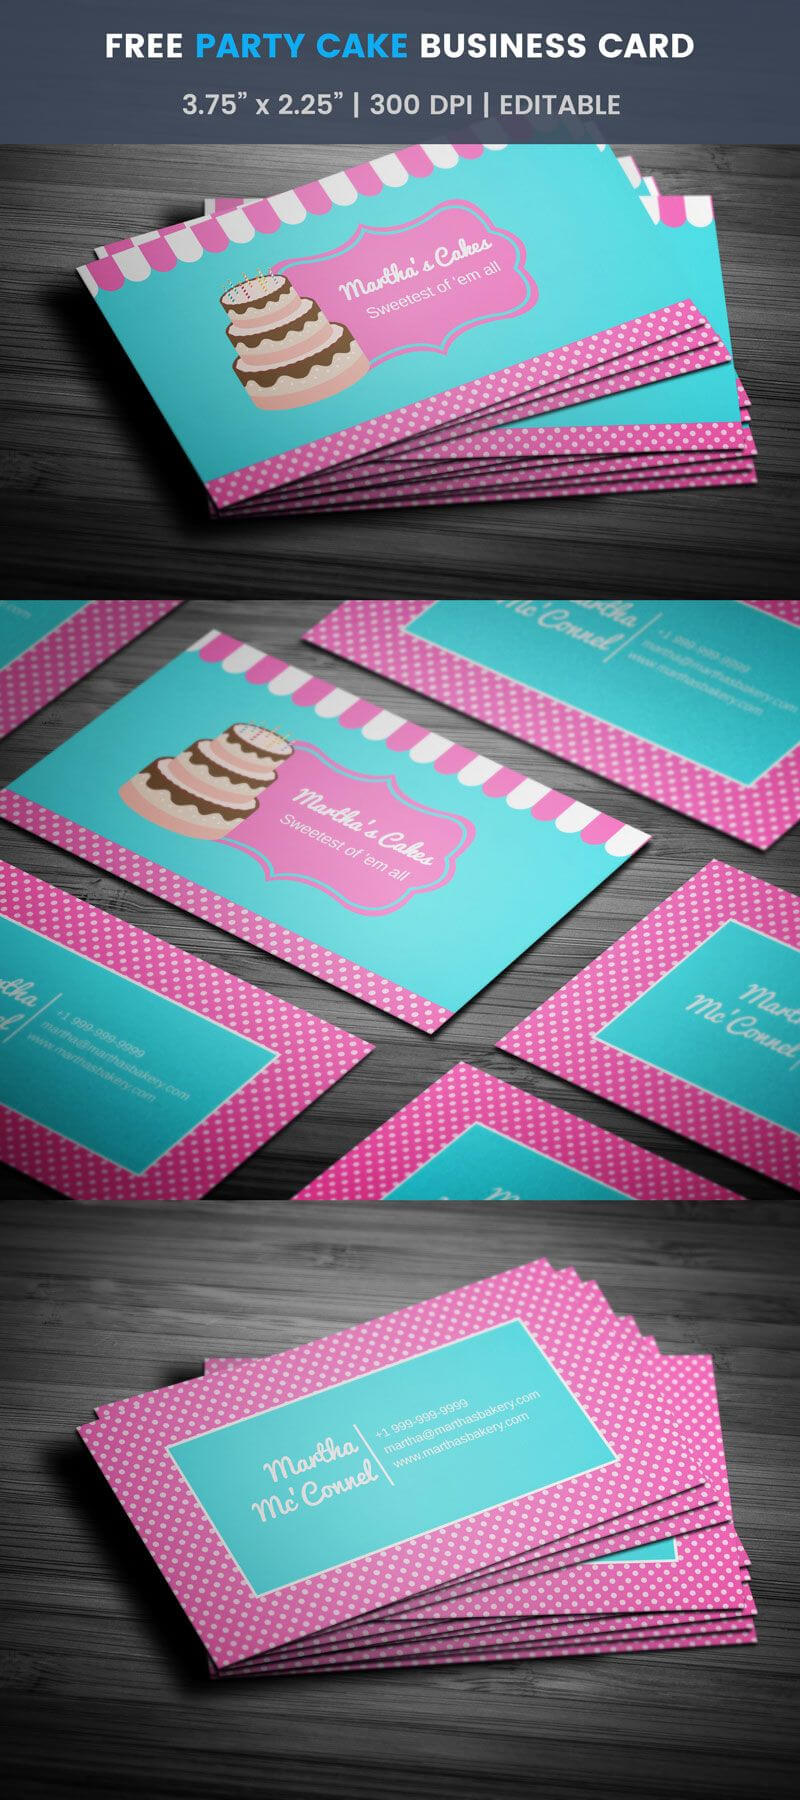 Party Cake Themed Bakery Business Card - Full Preview regarding Cake Business Cards Templates Free